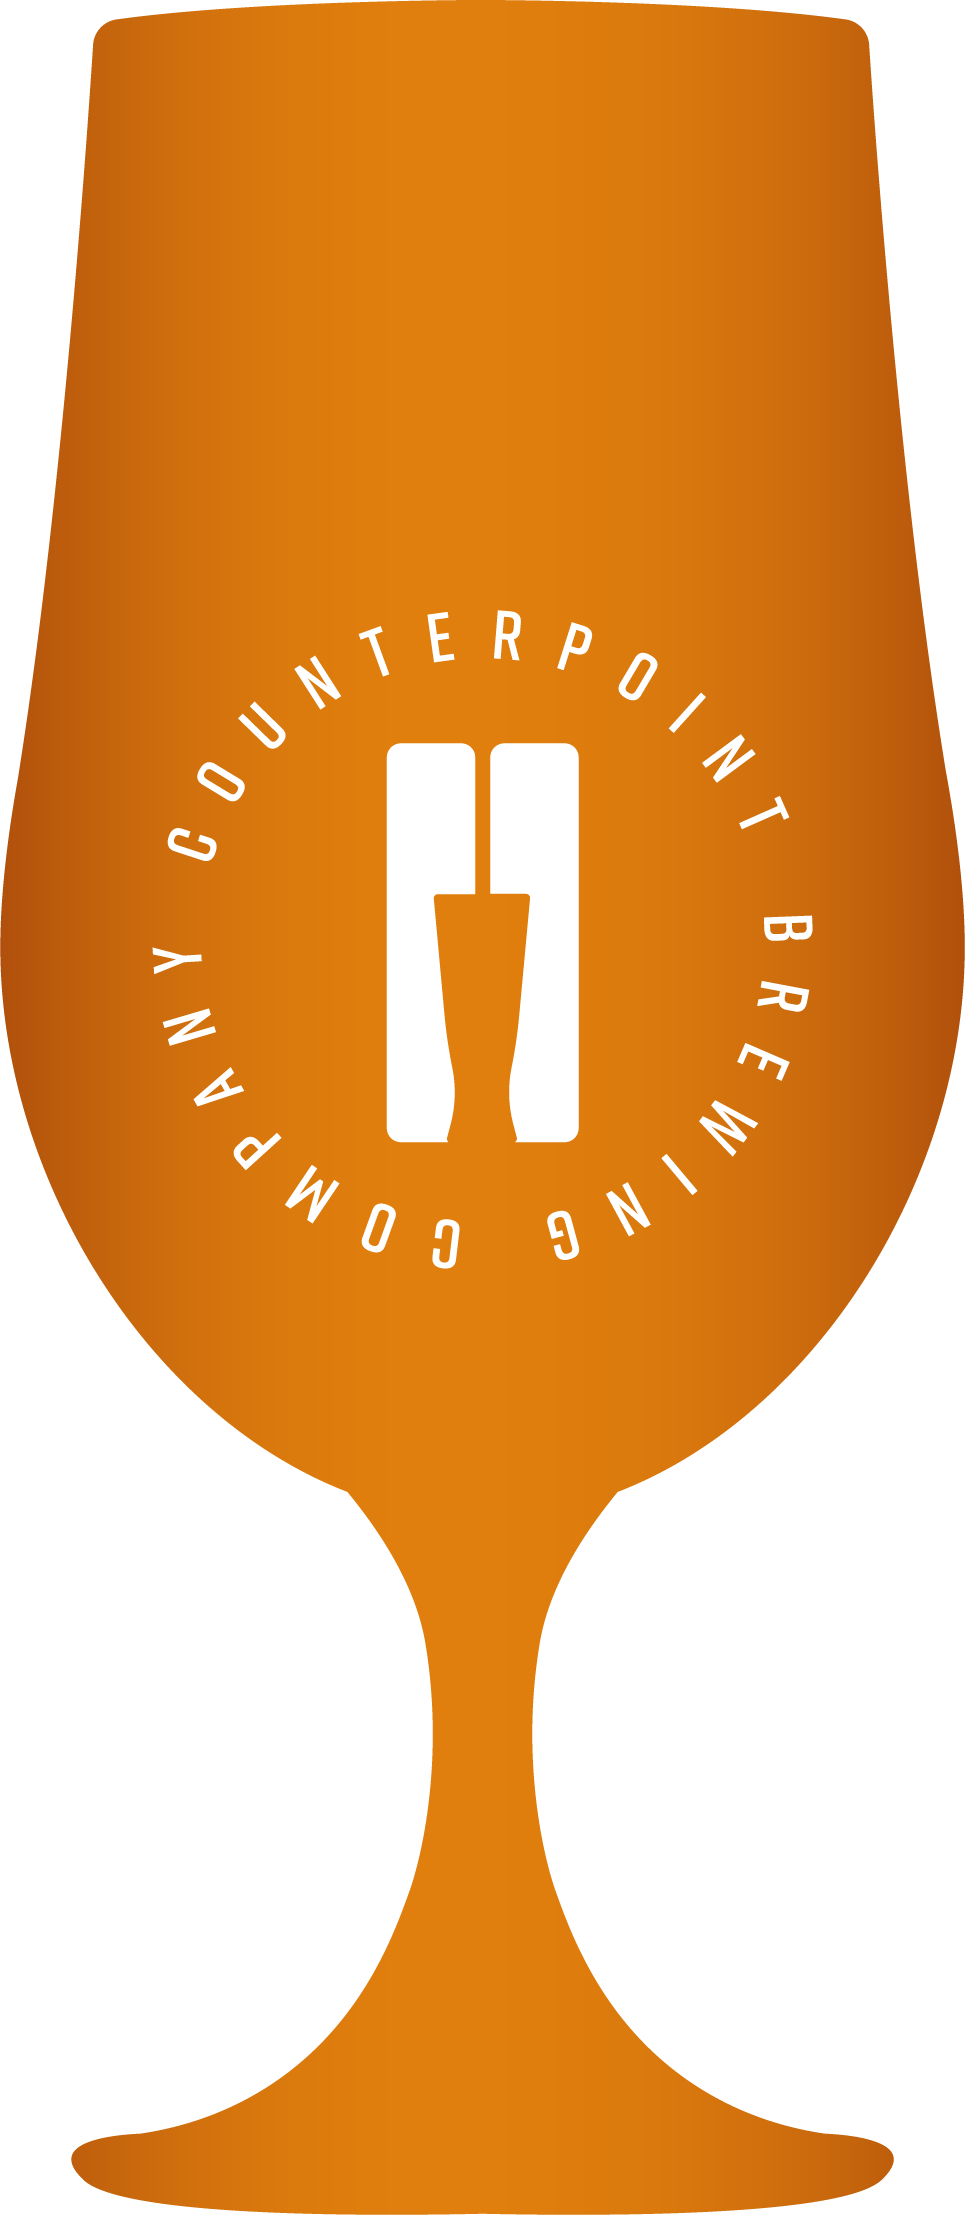 Icon shaped like a beer glass, demonstrating beer colour - Pale Amber